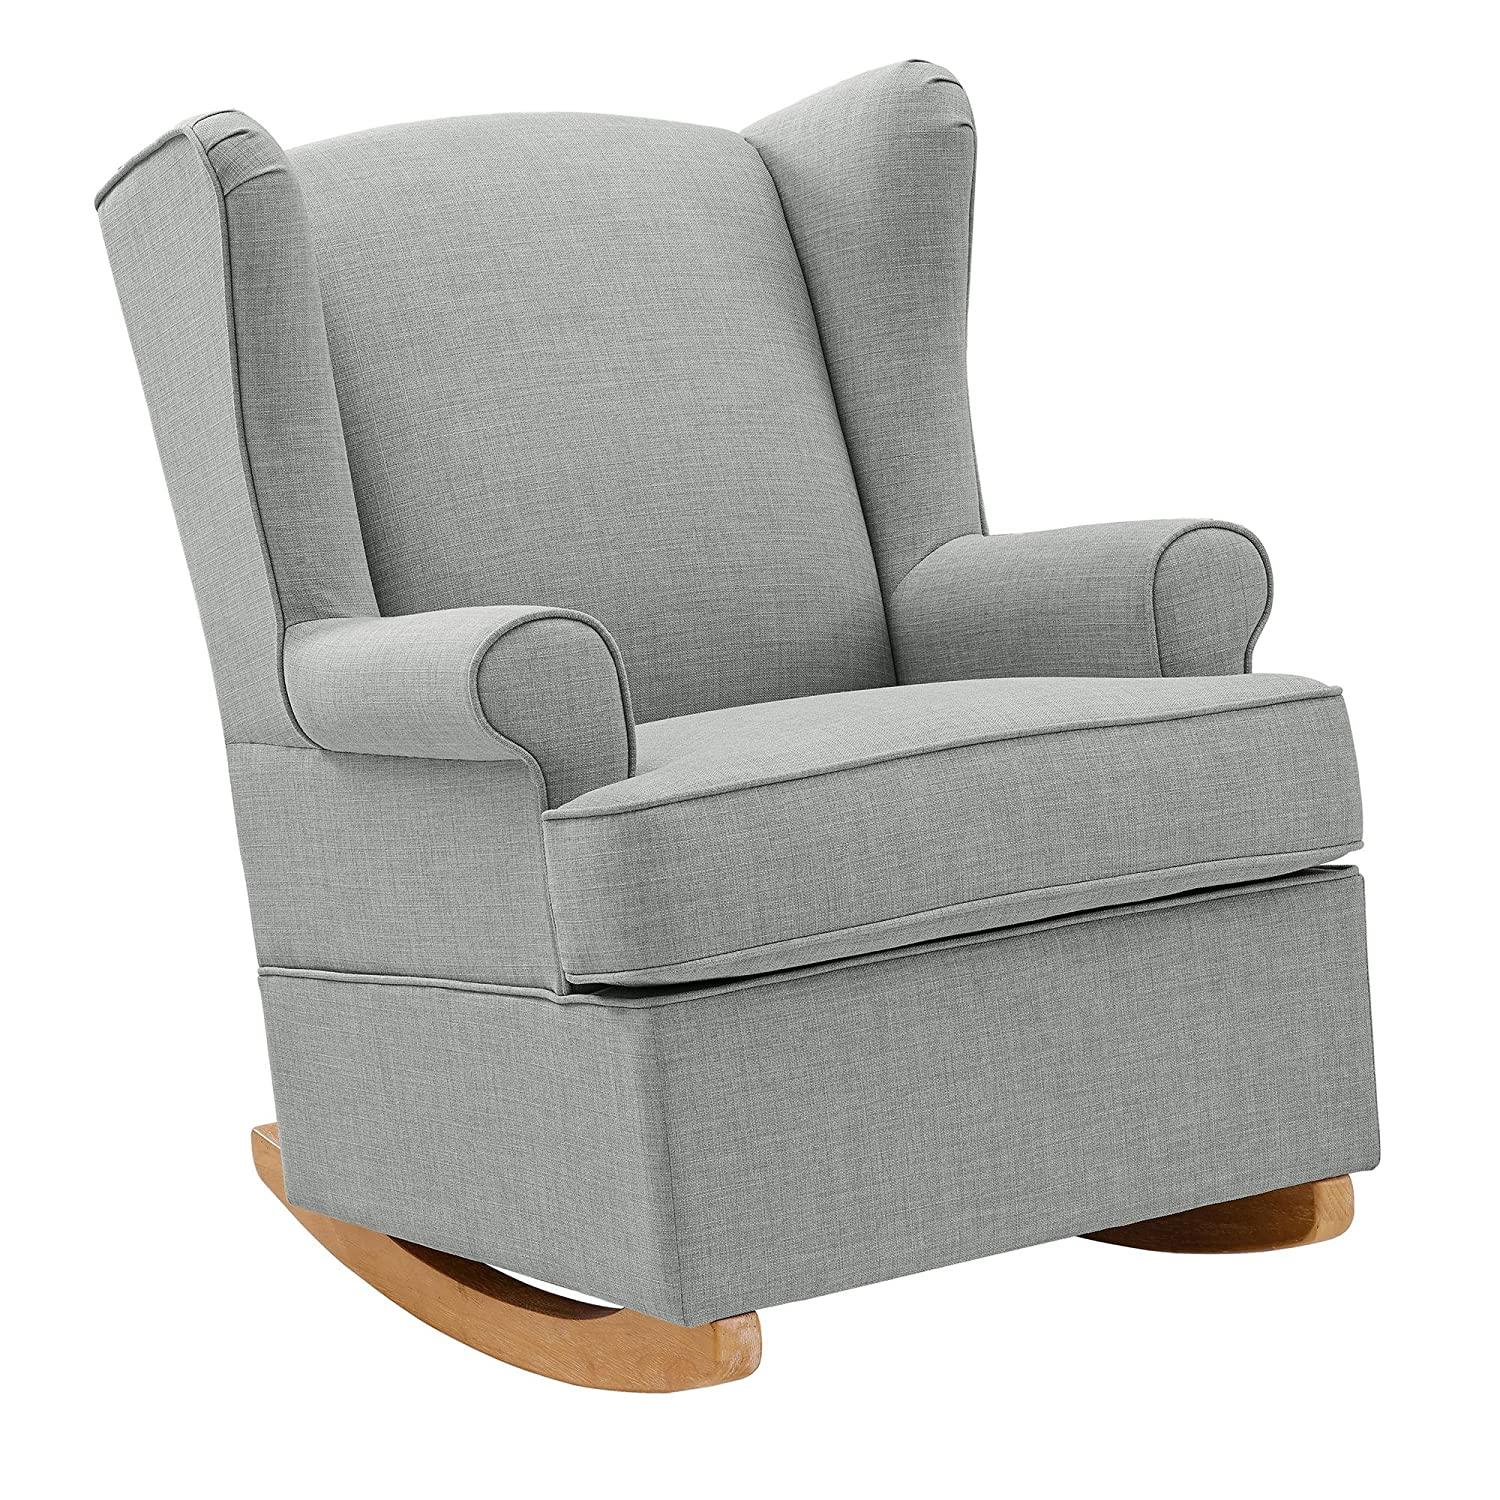 Cool Baby Relax Wainwright Wingback Convertible Rocker Chair Gray Linen Pdpeps Interior Chair Design Pdpepsorg